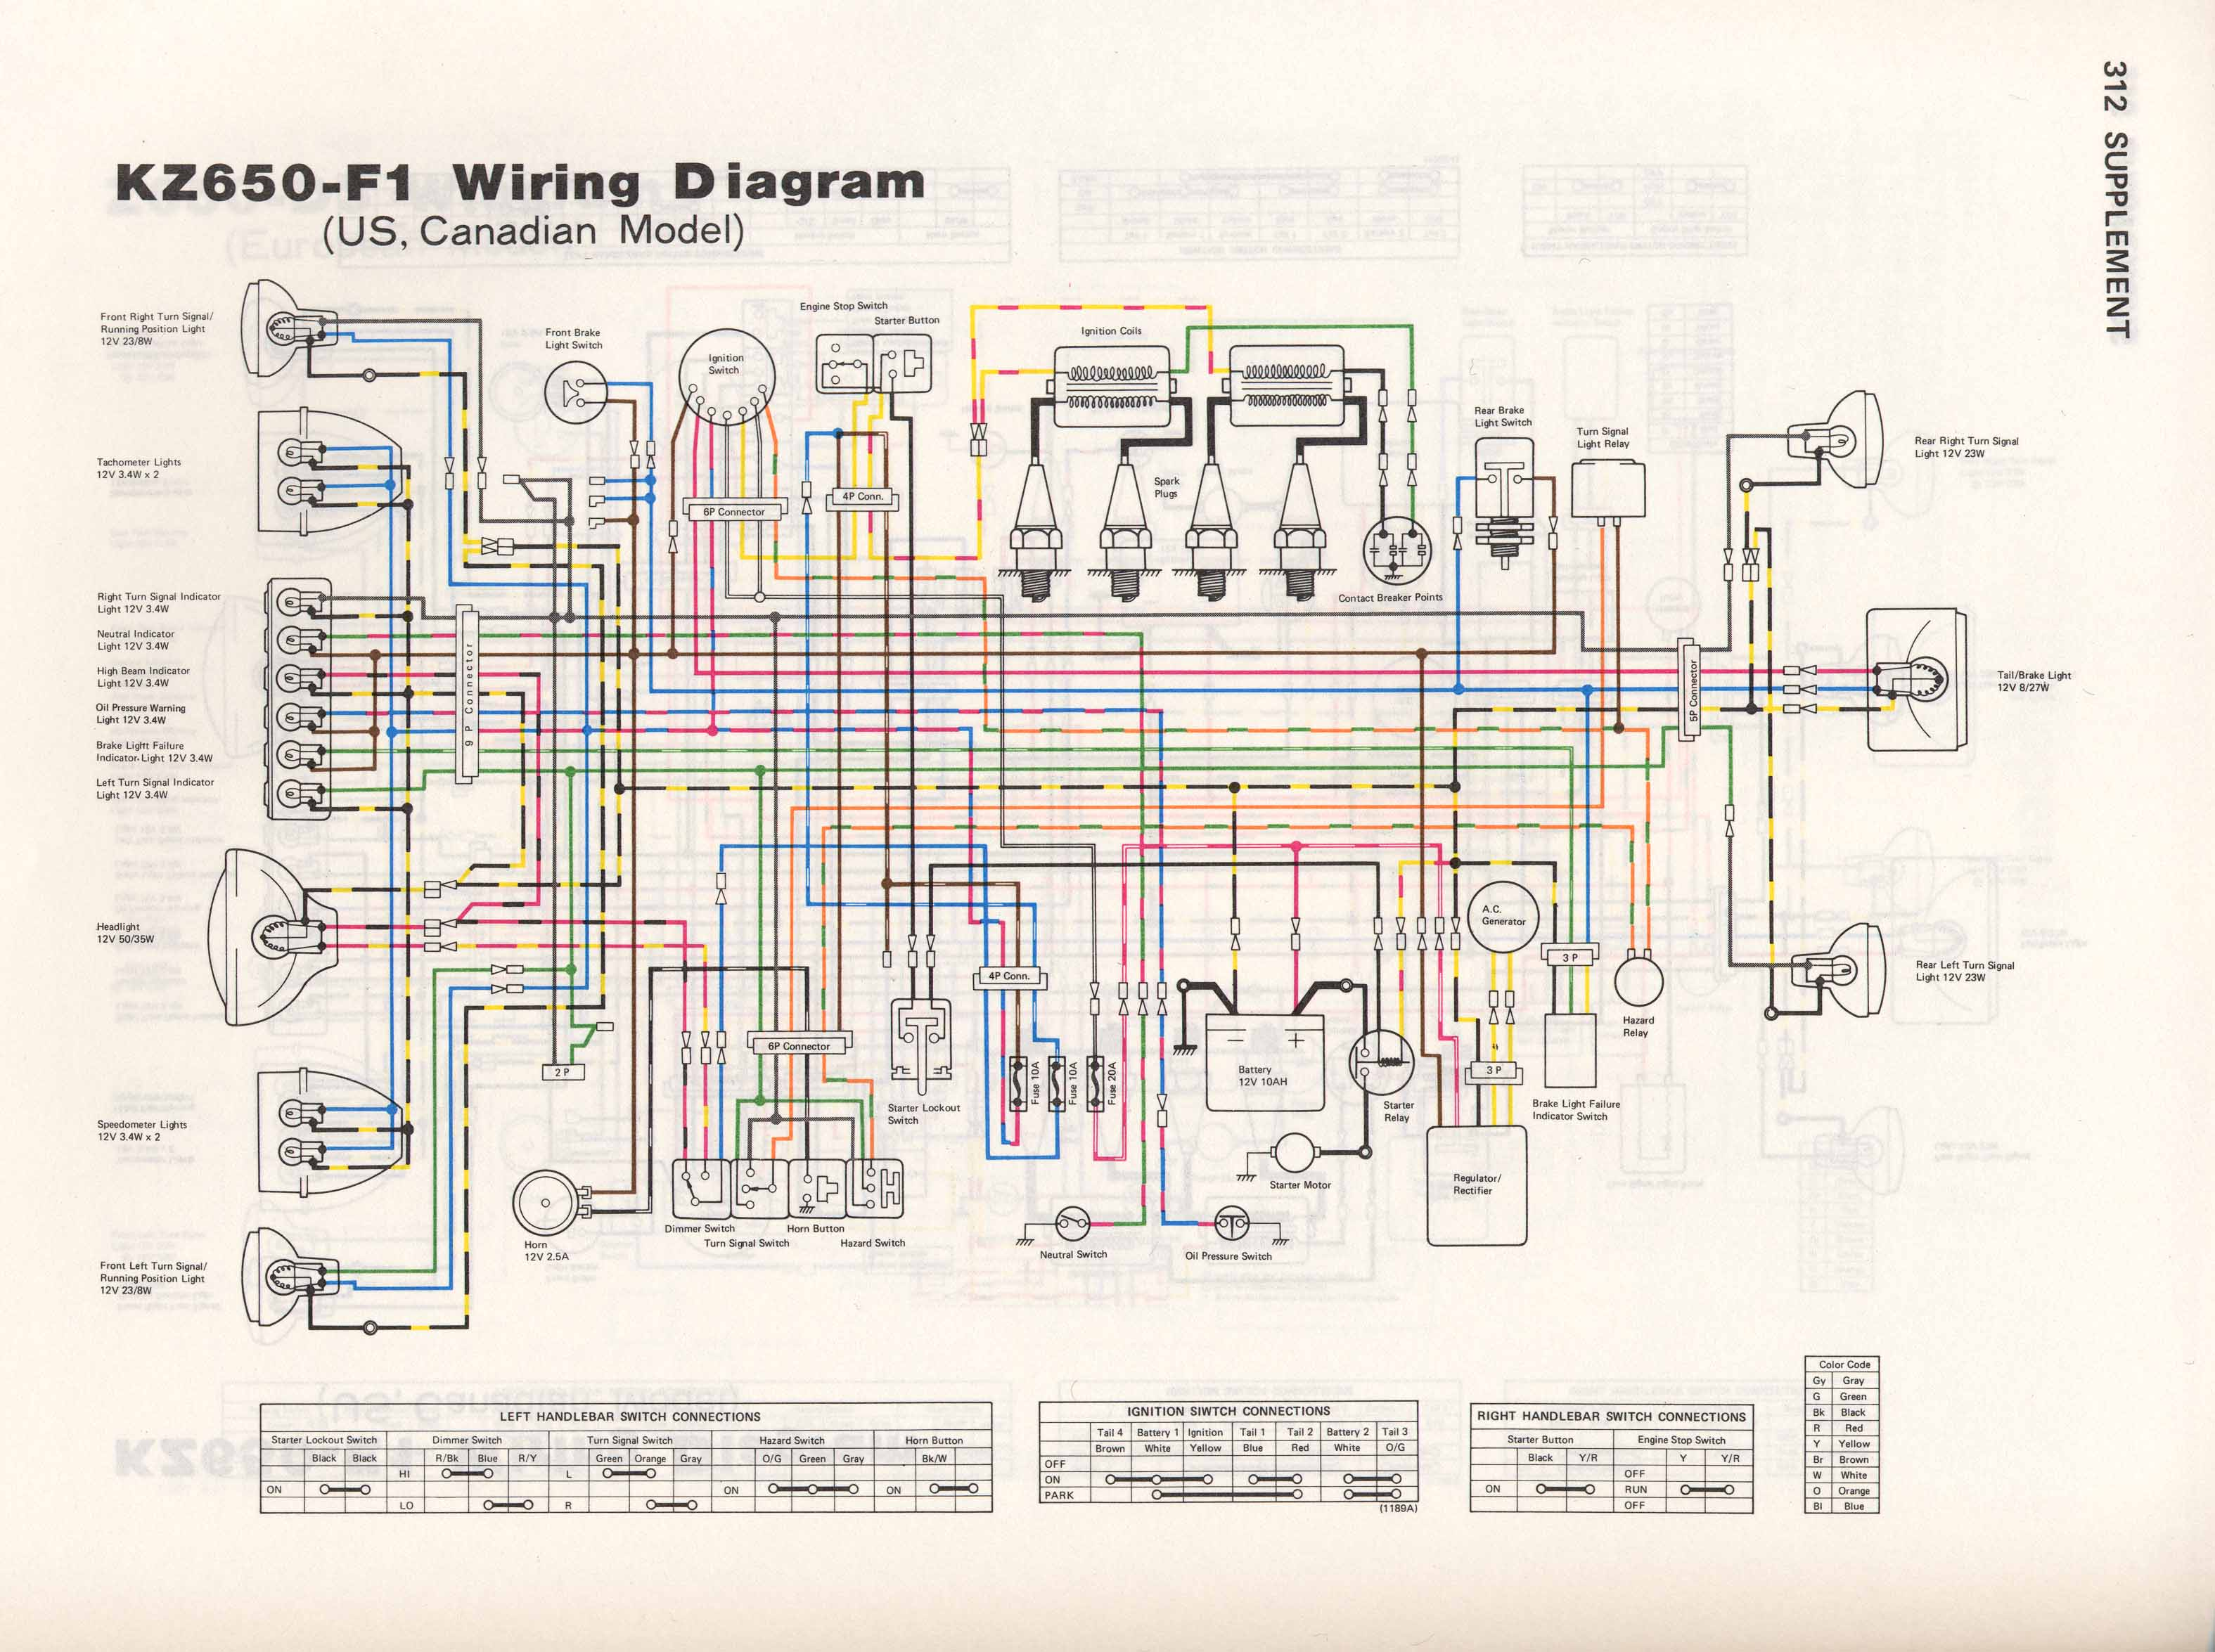 KZ650 F1 kz650 info wiring diagrams 82 Kawasaki LTD 750 Bobber at webbmarketing.co